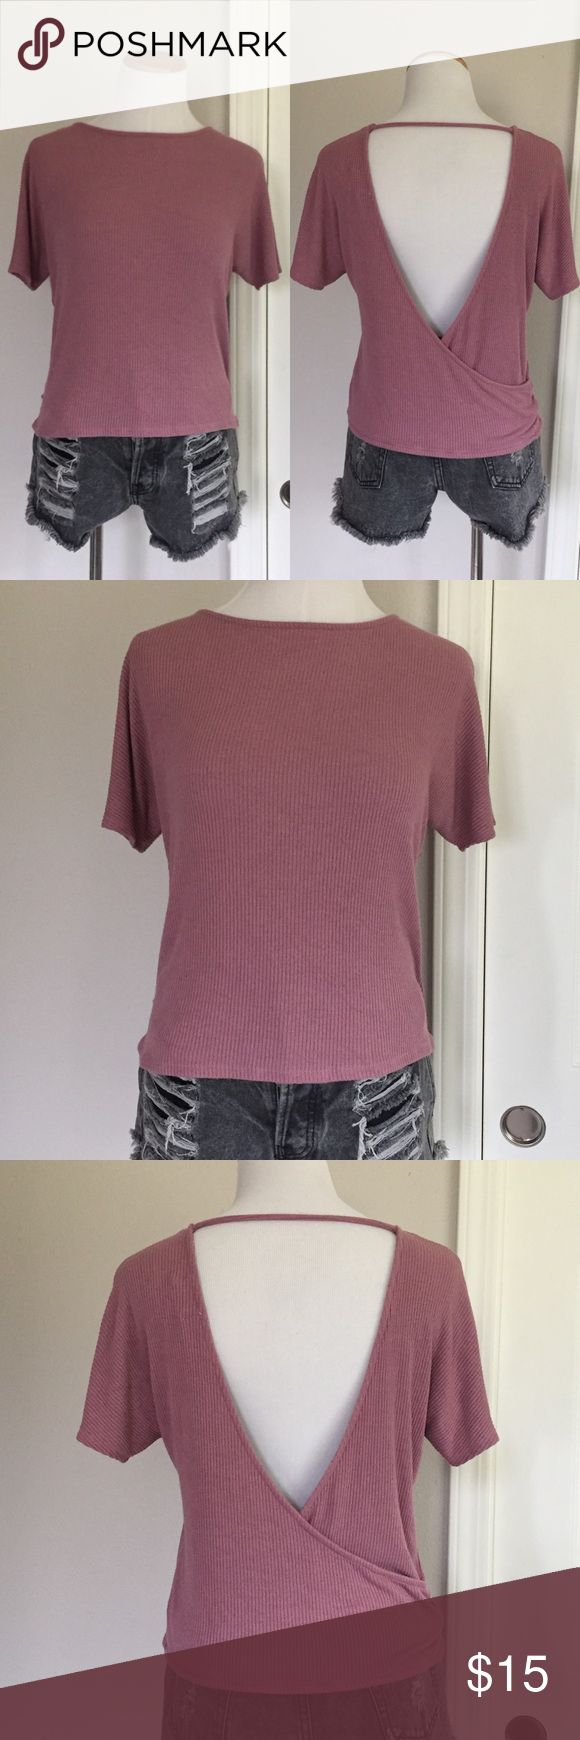 Open Back Tee Dusty rose color In excellent condition